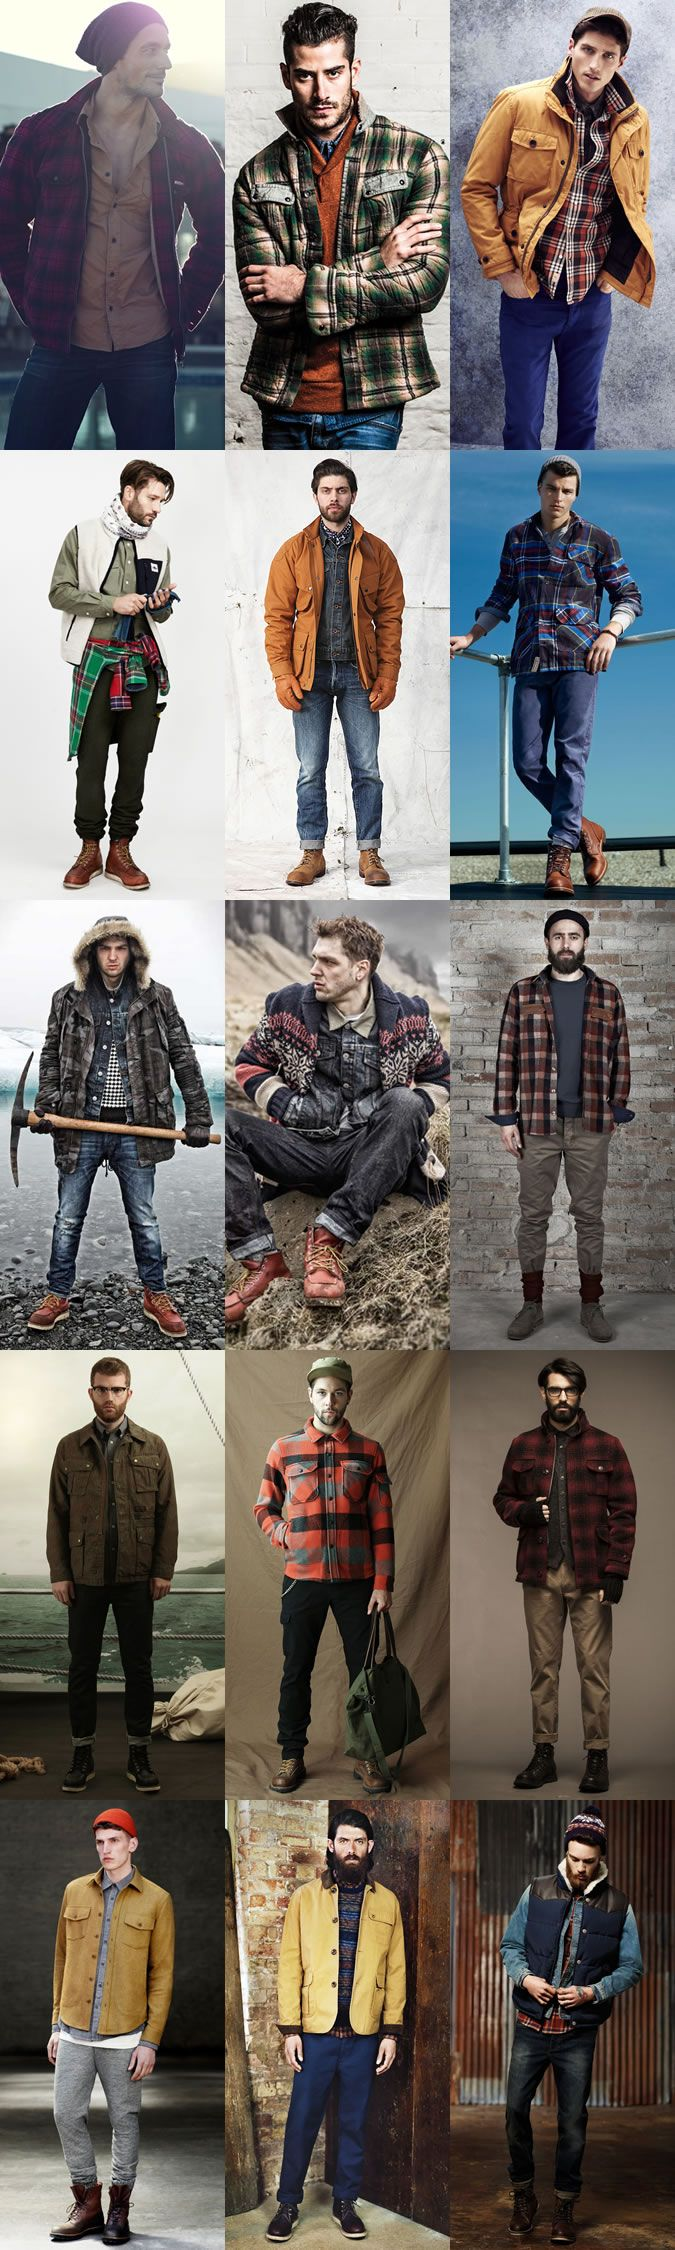 Men's Hunter Gather Style/Outfit Inspiration Lookbook                                                                                                                                                                                 More